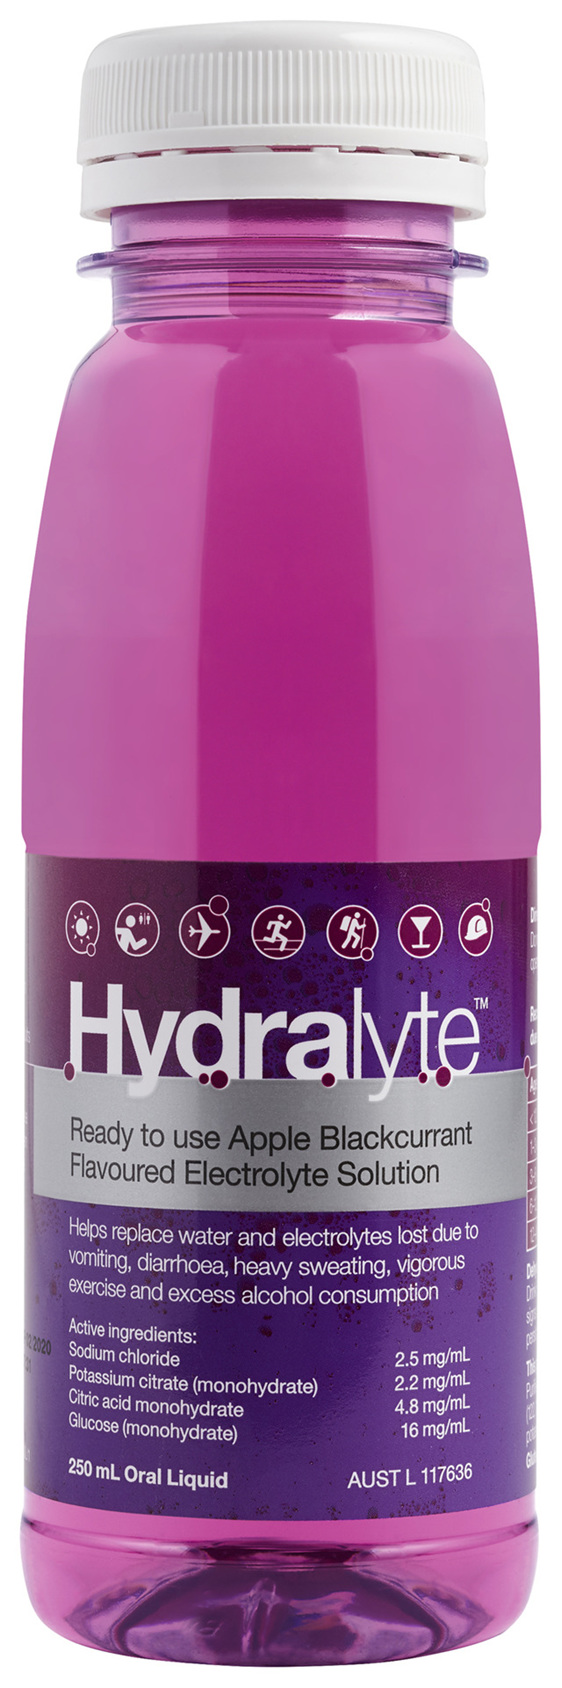 Hydralyte Apple Blackcurrant Flavoured Electrolyte Liquid 250mL